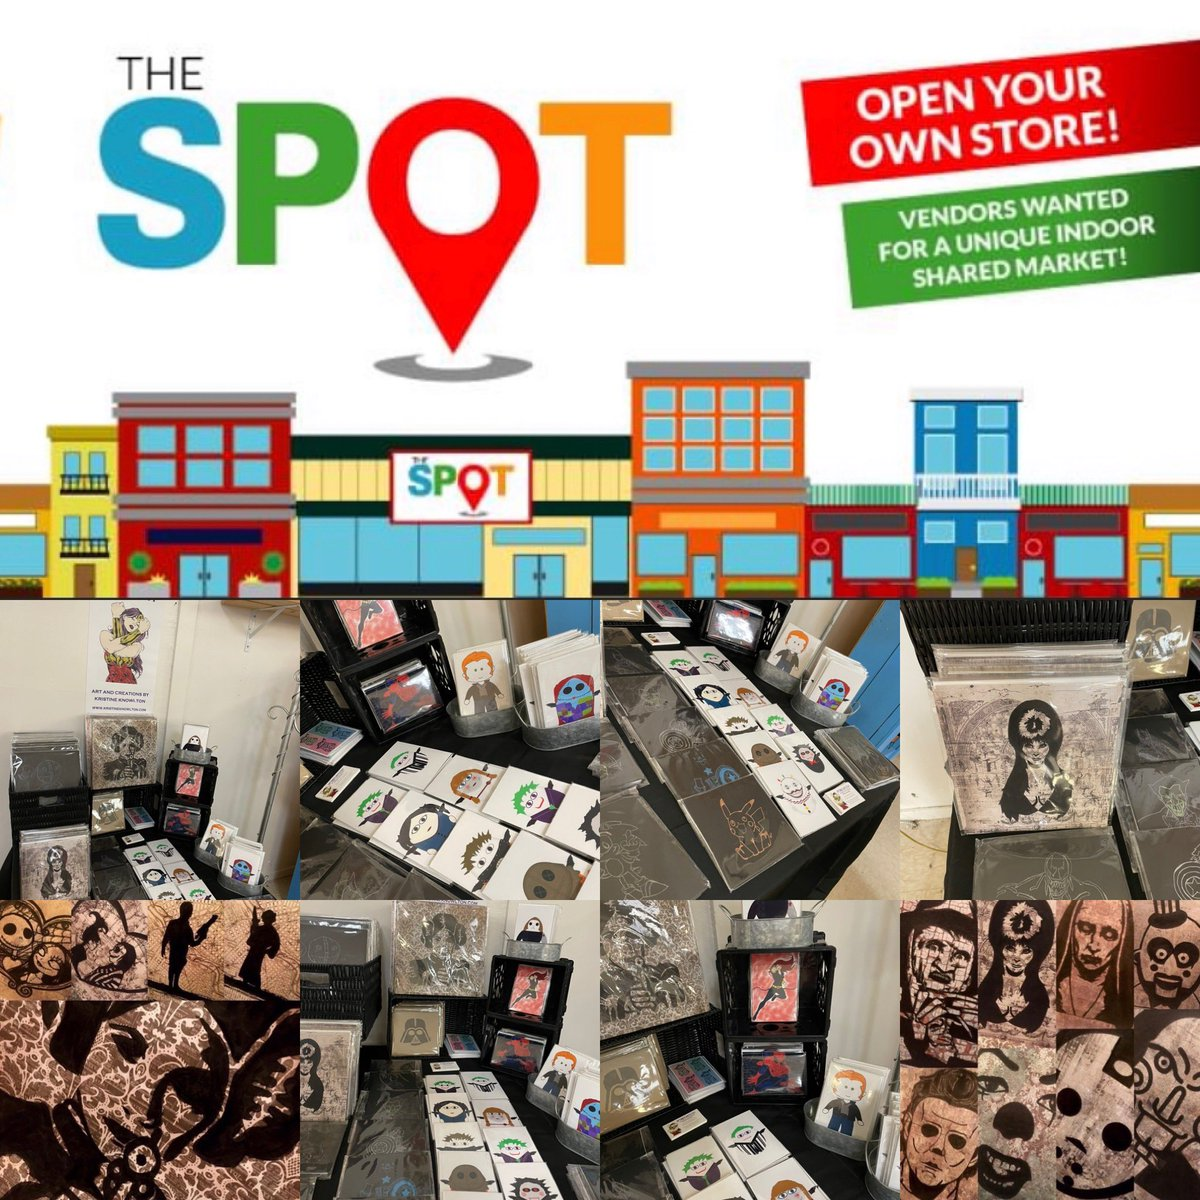 You can now swing by The Spot in Vineland Offical home of Optimus Artistry!!! We are so happy and honored to be a part of the Spot!! Come on down for amazing shopping!!! @thespotattheave  #thespot #thespitsttheave #art #shopping #vintage #art #shops #antiques #family #vineland https://t.co/YEIzRsy5OC